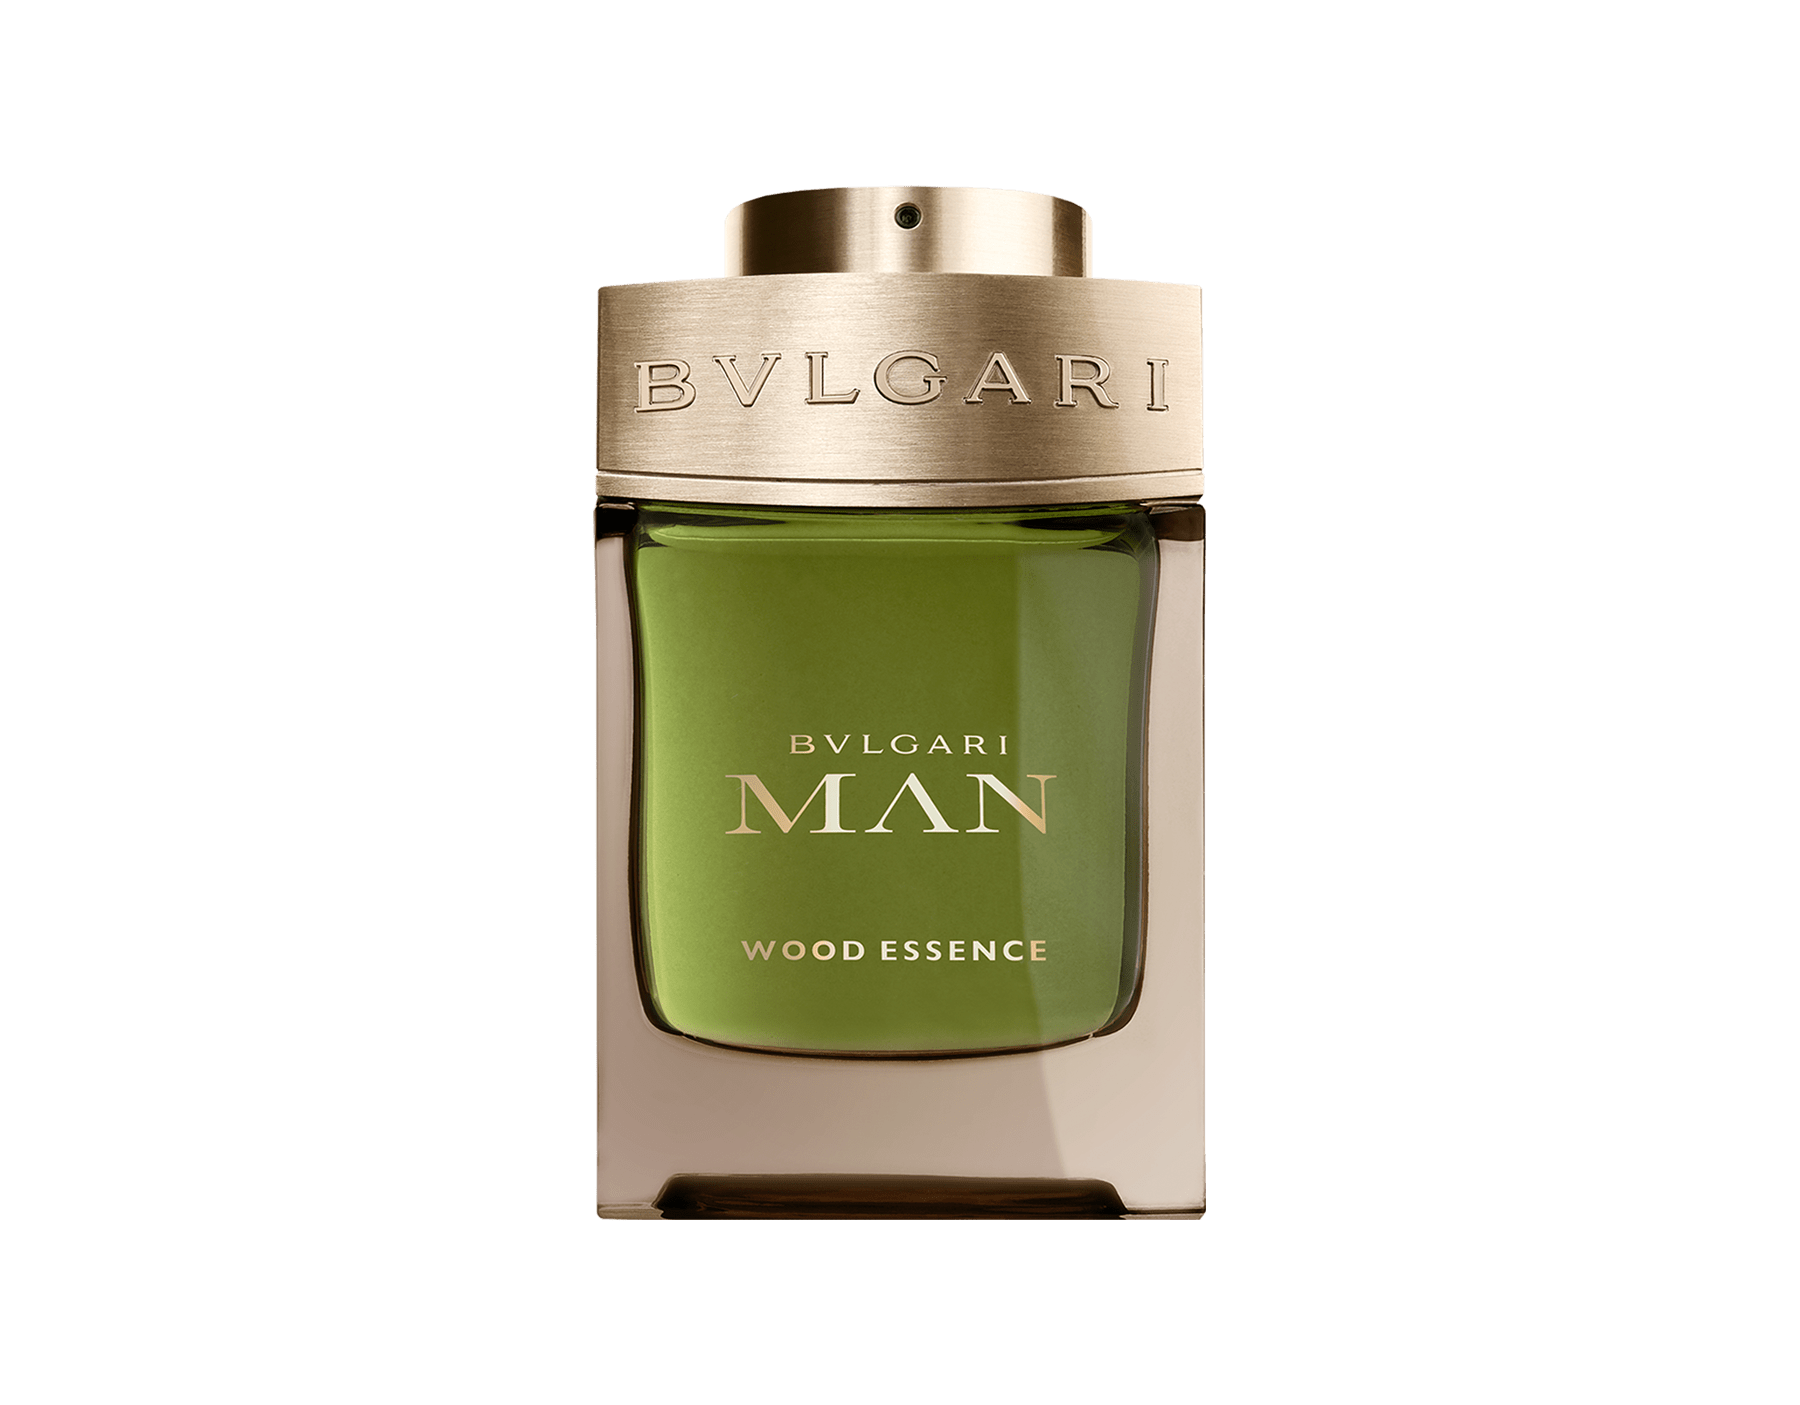 An energizing woody eau de parfume inspired by the life force found in nature. 46100 image 1